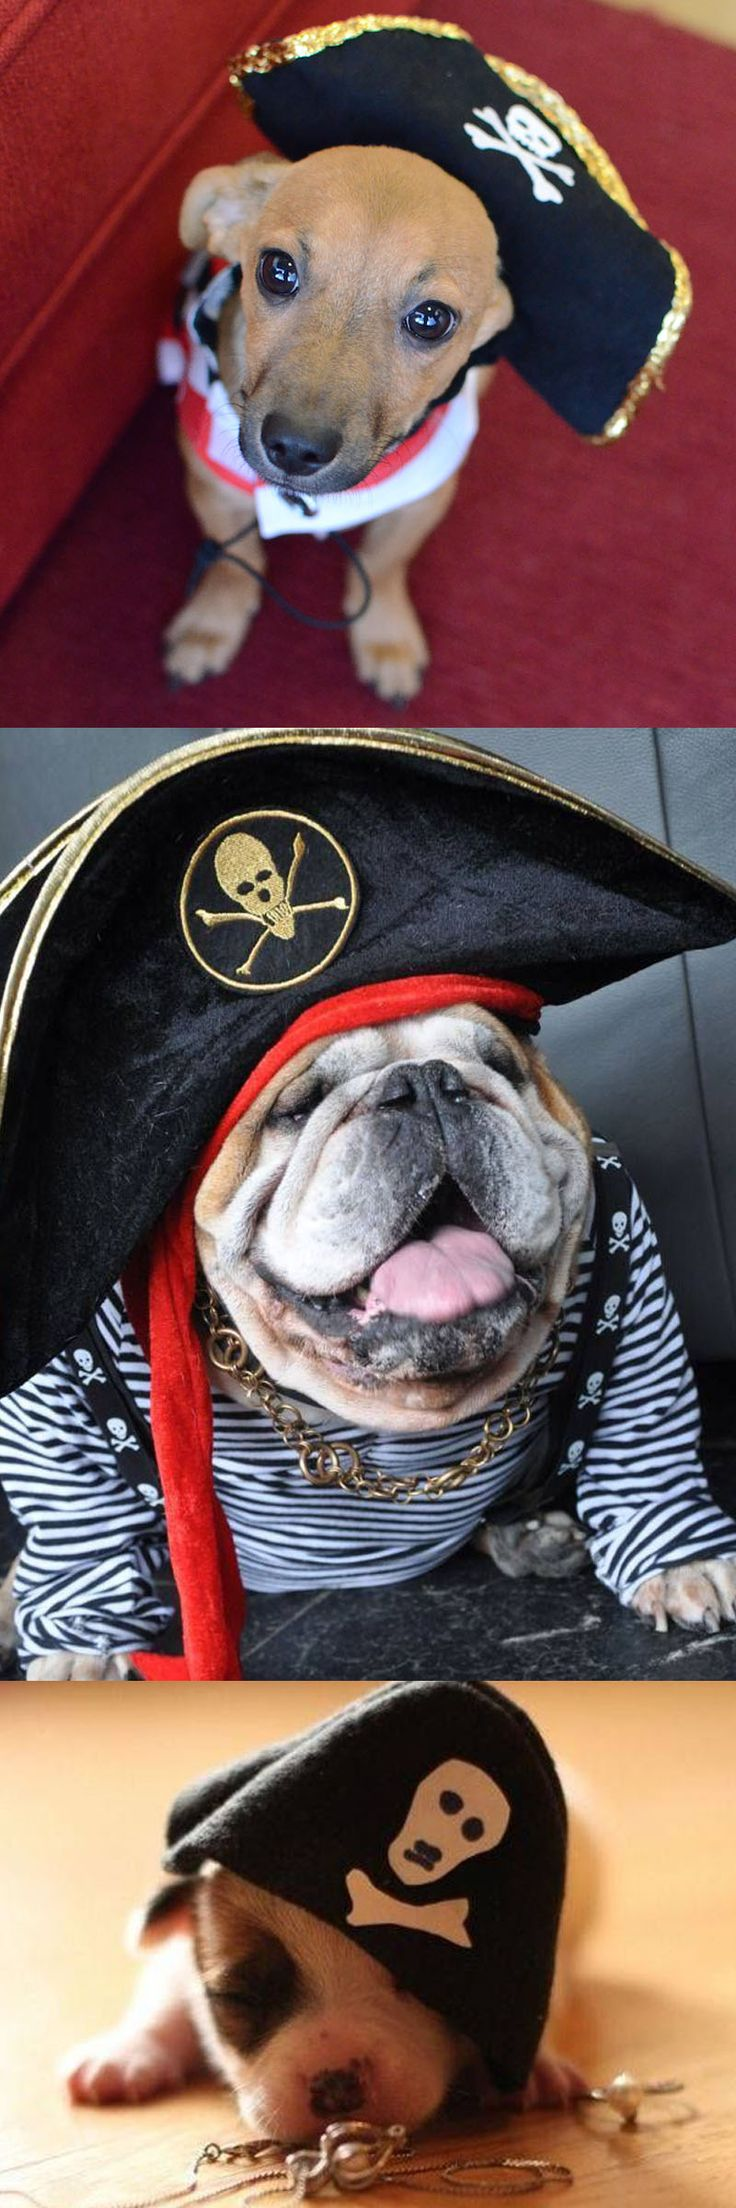 Happy #TalkLikeaPirateDay! If you're missin' any treasure, ye might want t' check what these pups have been buryin' in the backyard!